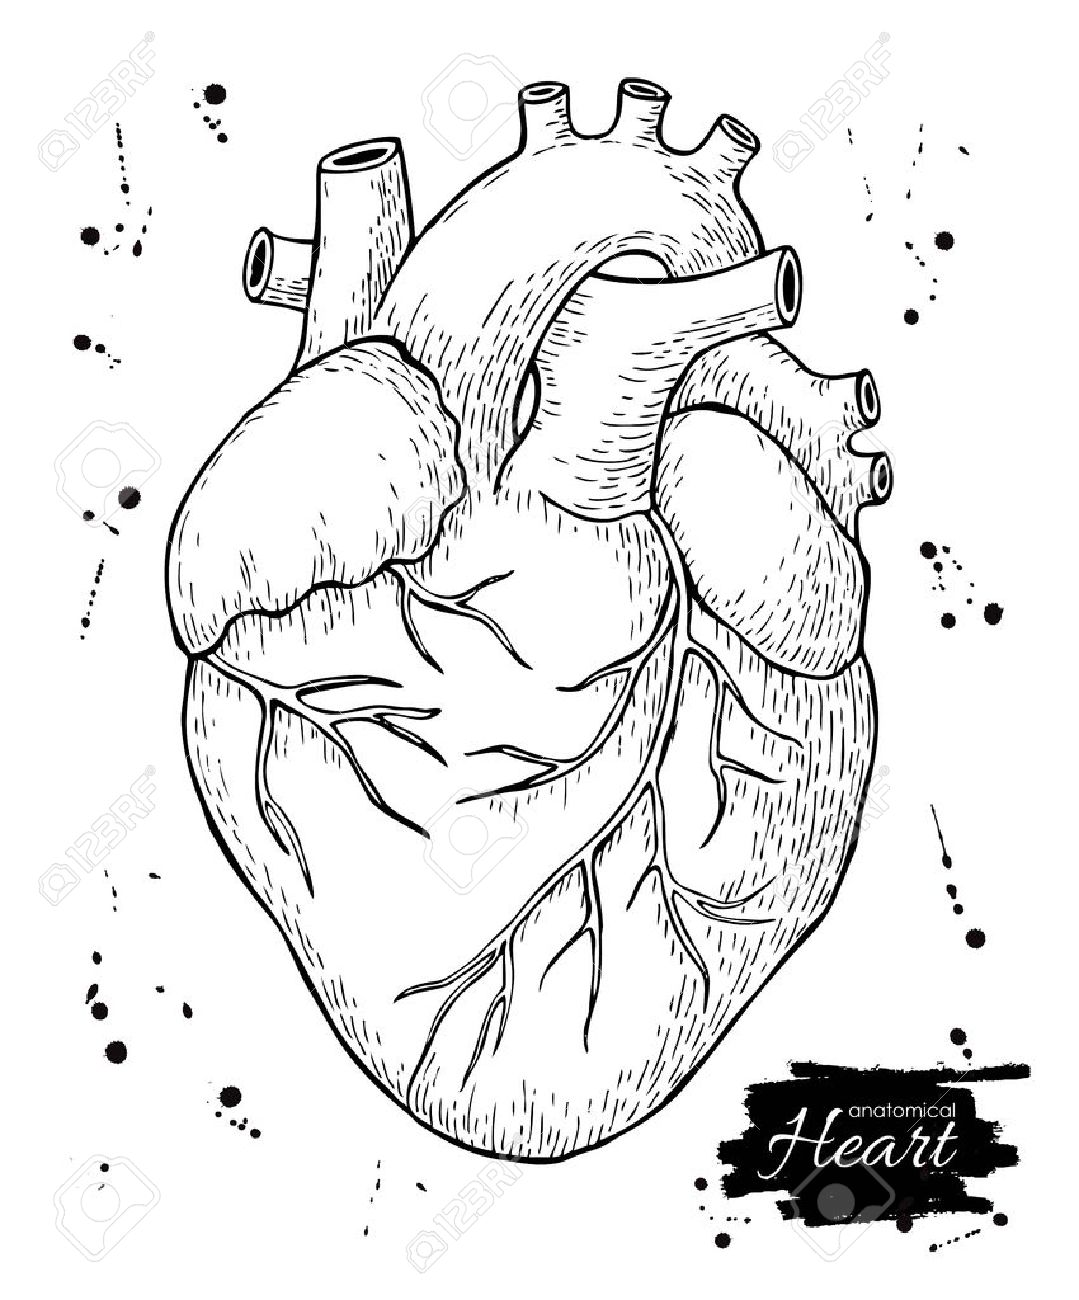 Heart Drawing Anatomy At Getdrawings